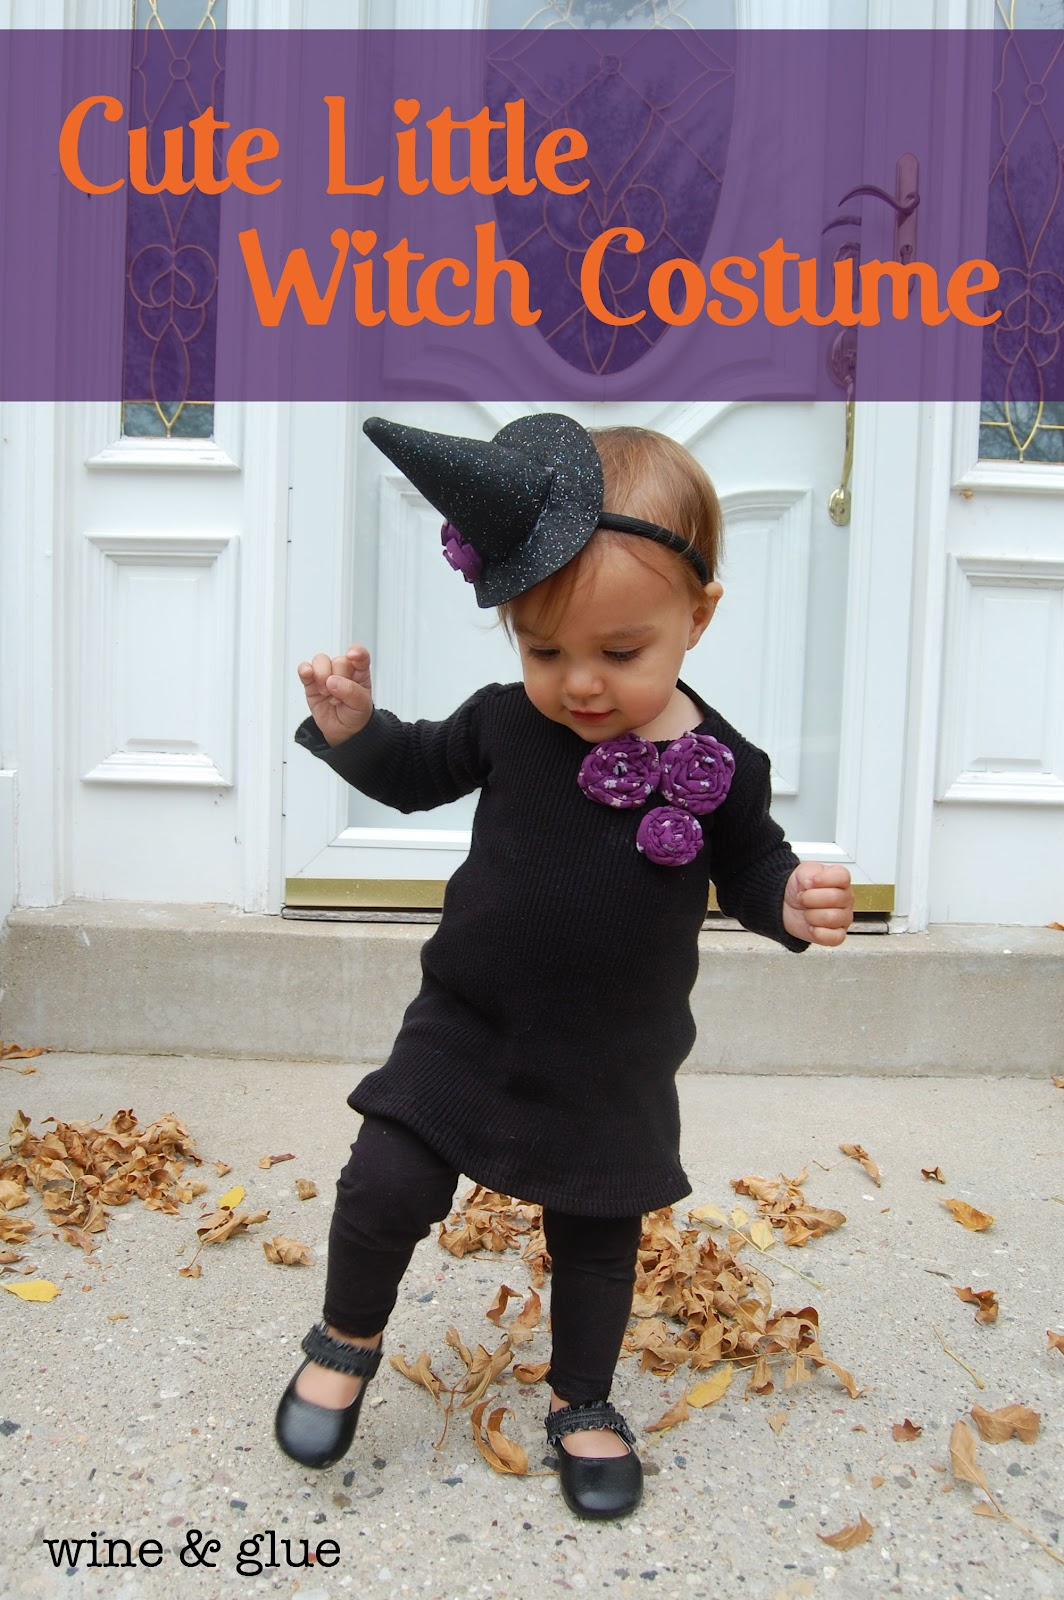 Cute Little Witch Costume - Wine & Glue